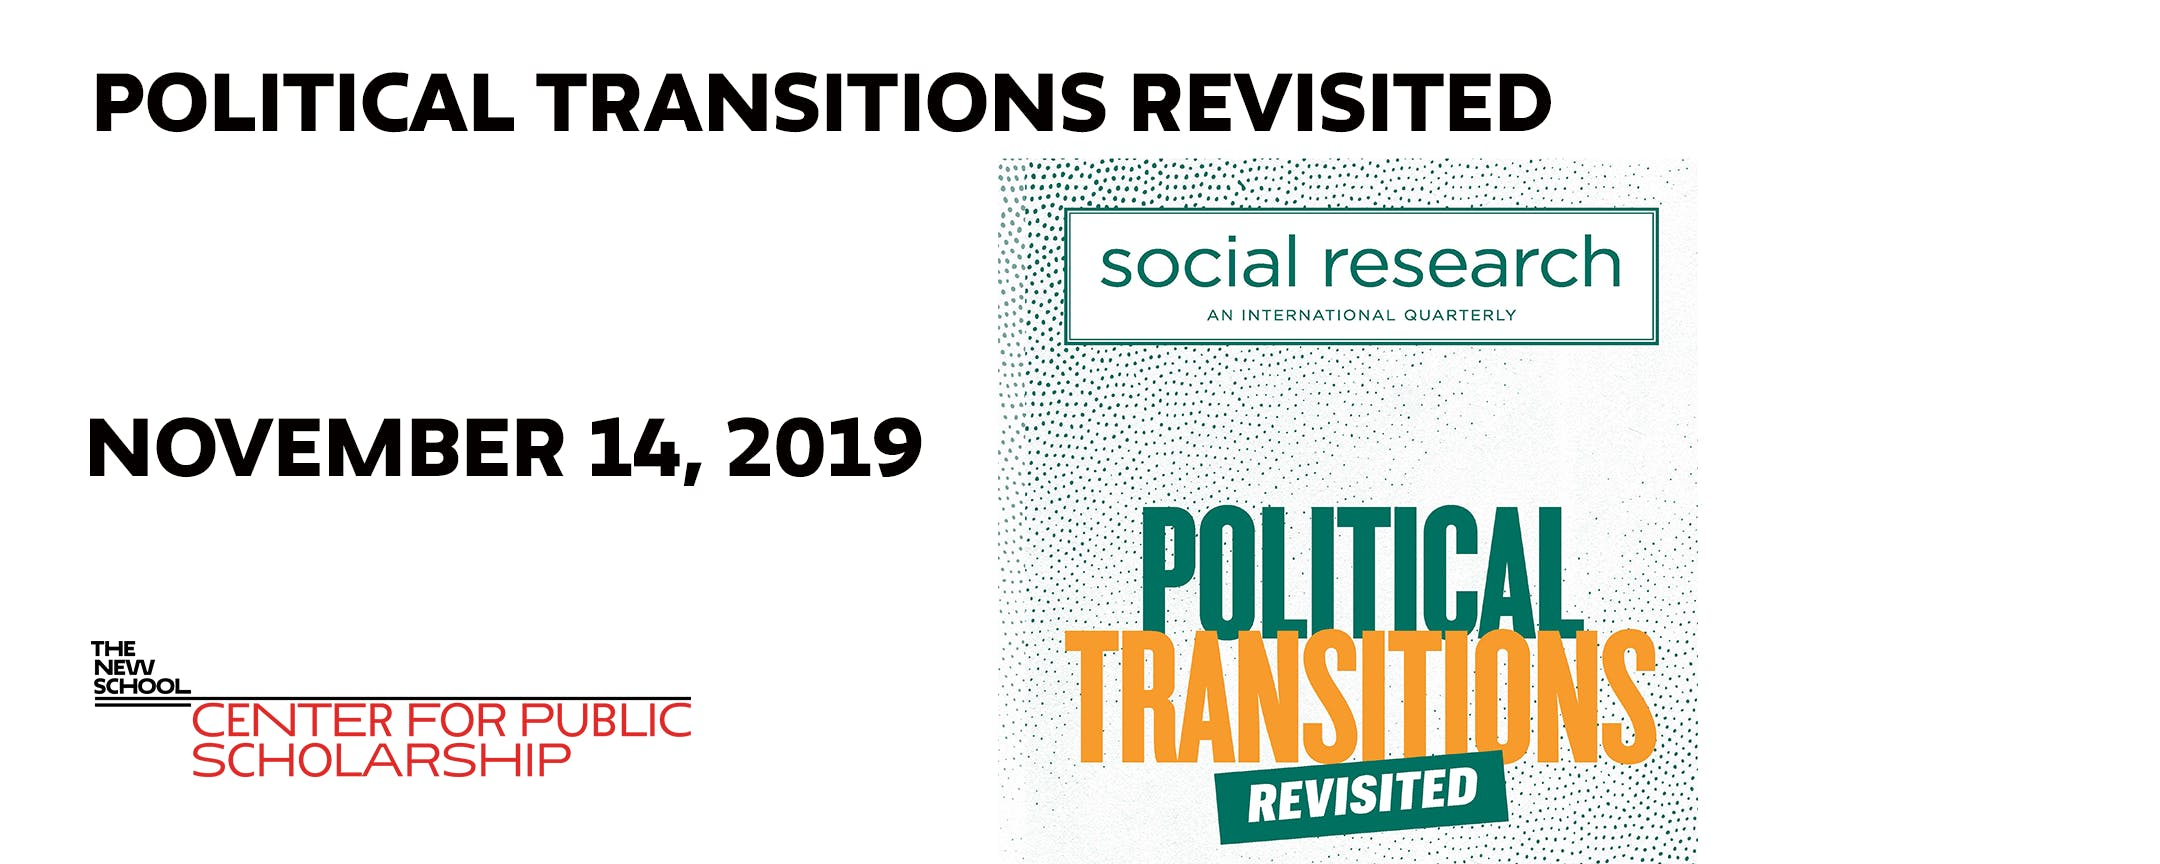 Political Transitions Revisited